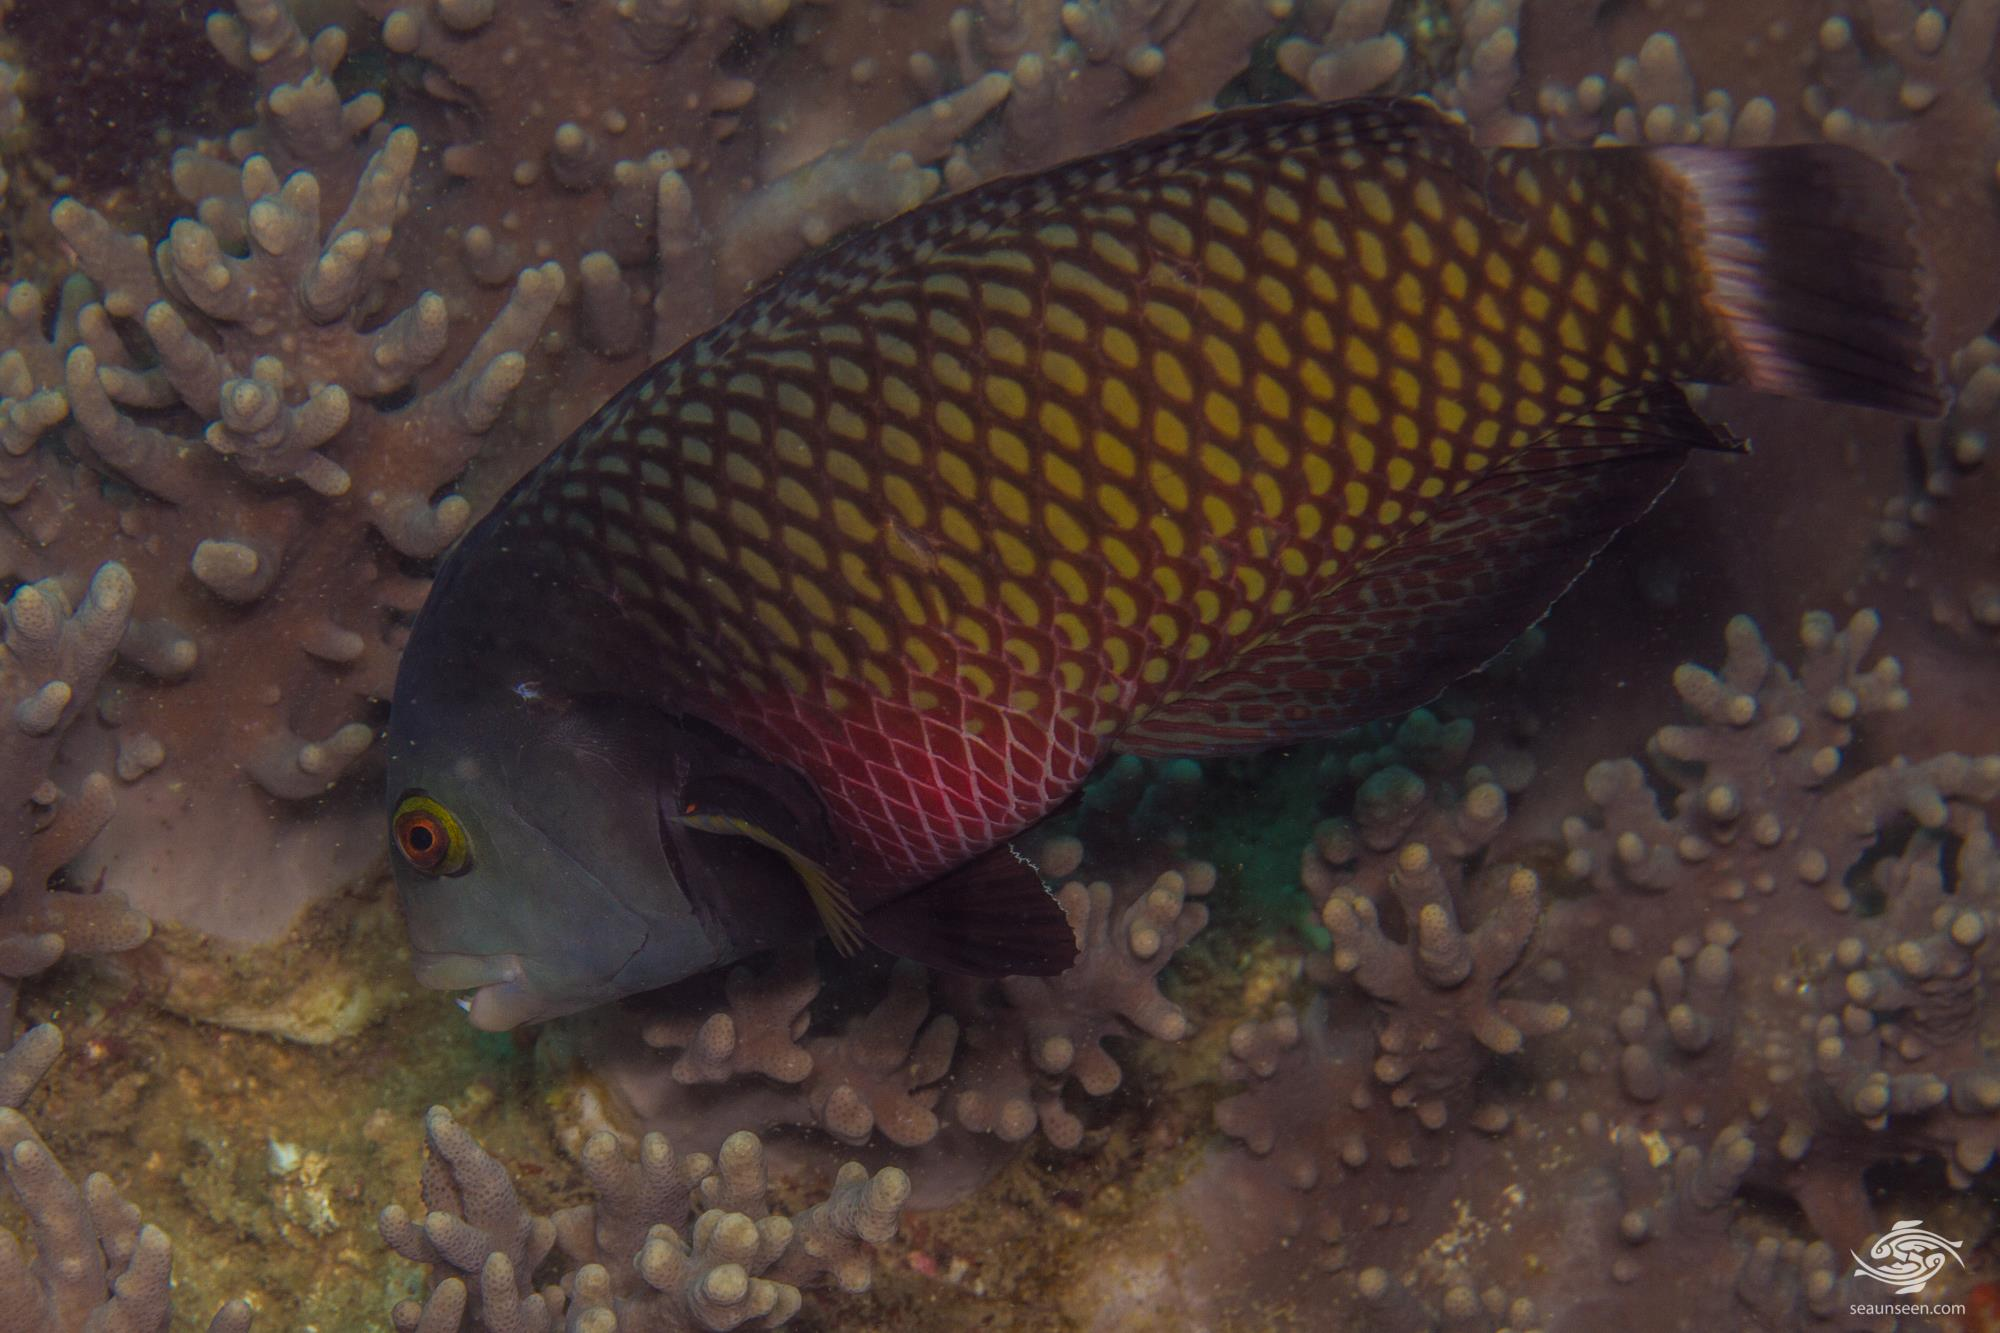 Adult Rockmover Wrasse (Novaculichthys taeniourus) is also known as the Dragon Wrasse, Reindeer Wrasse